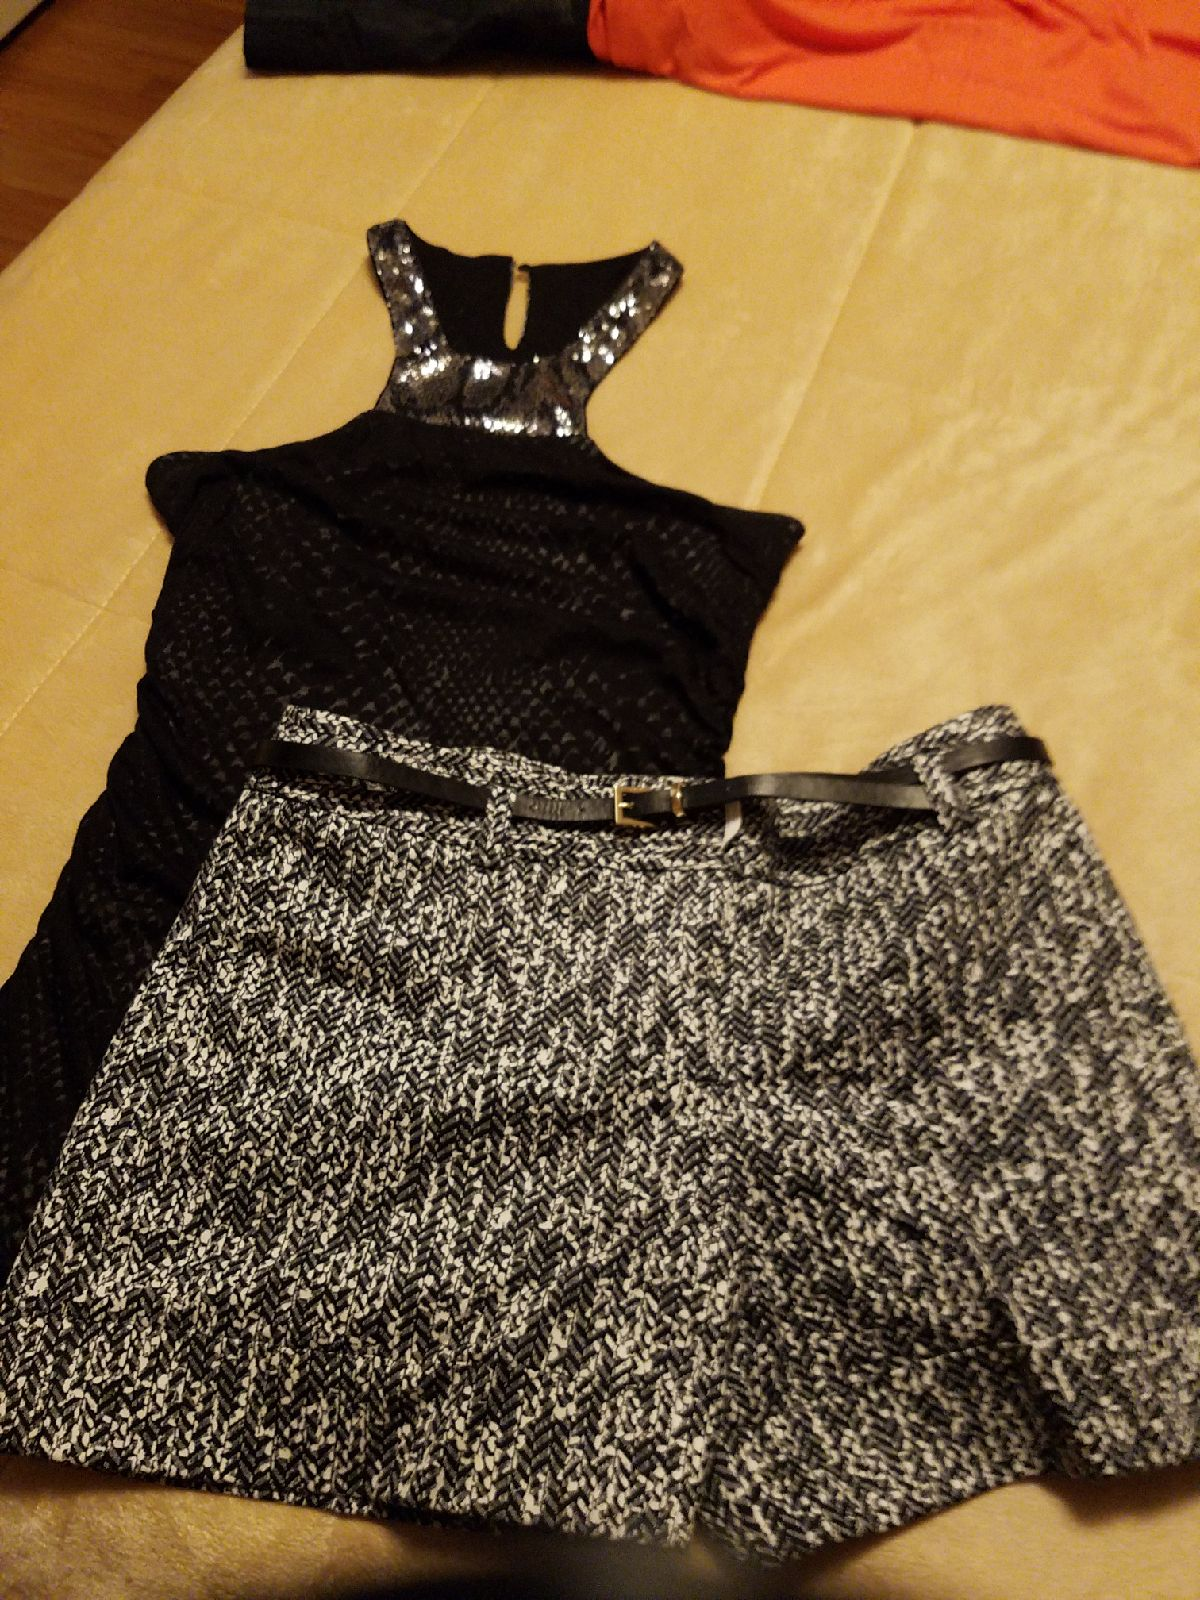 Express outfit